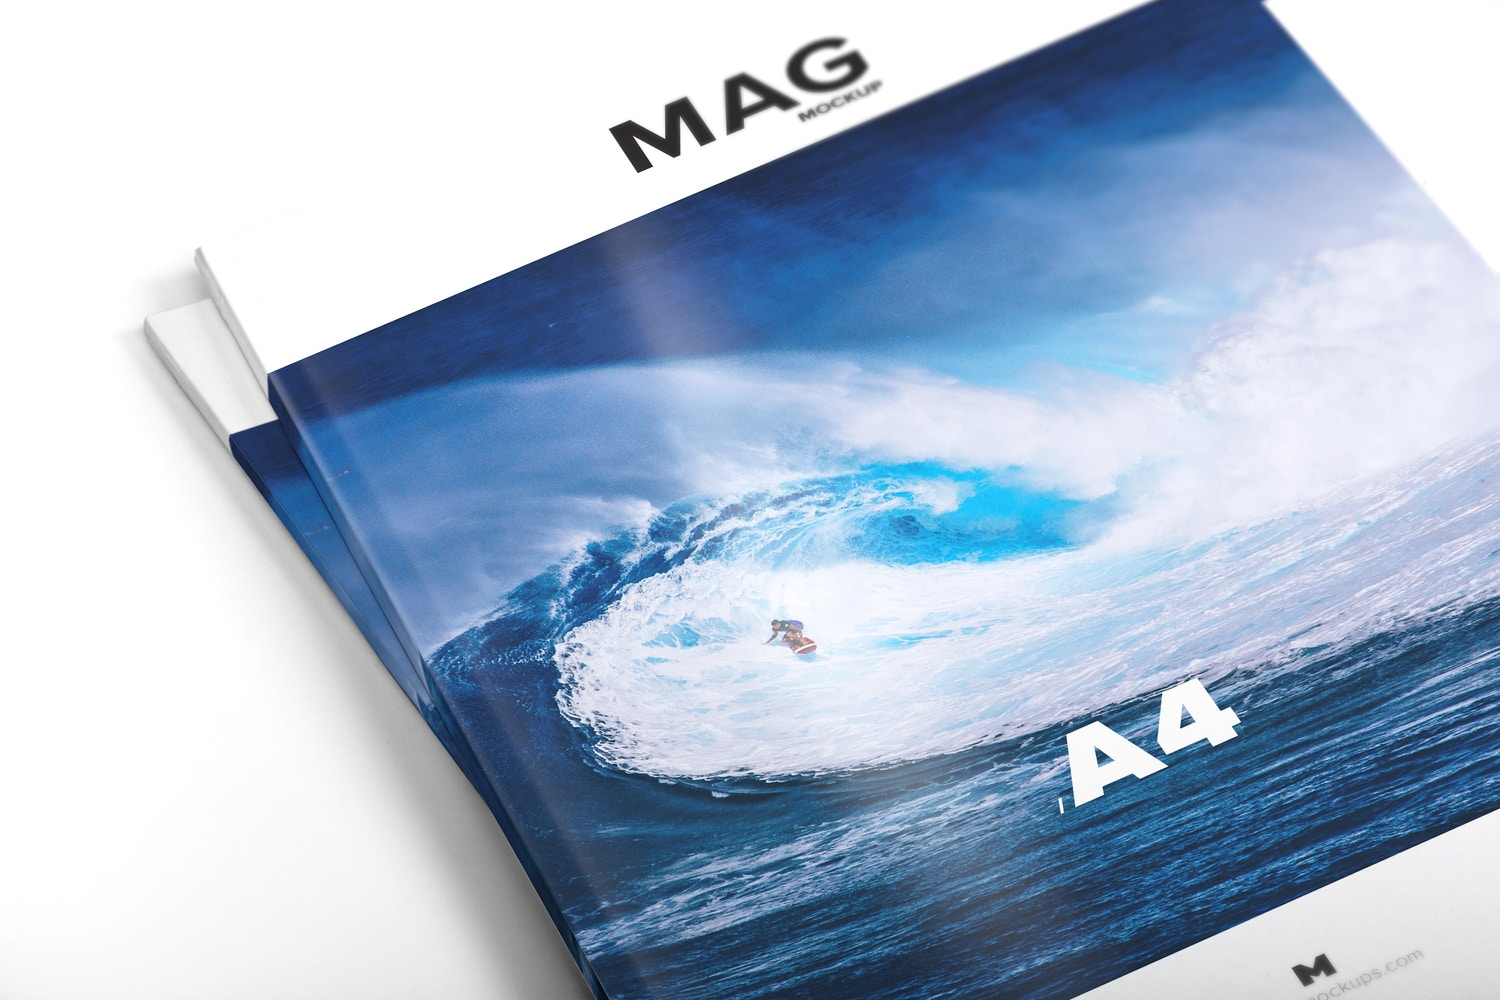 A4 Magazine Closed Mockup 01 by Original Mockups on Original Mockups